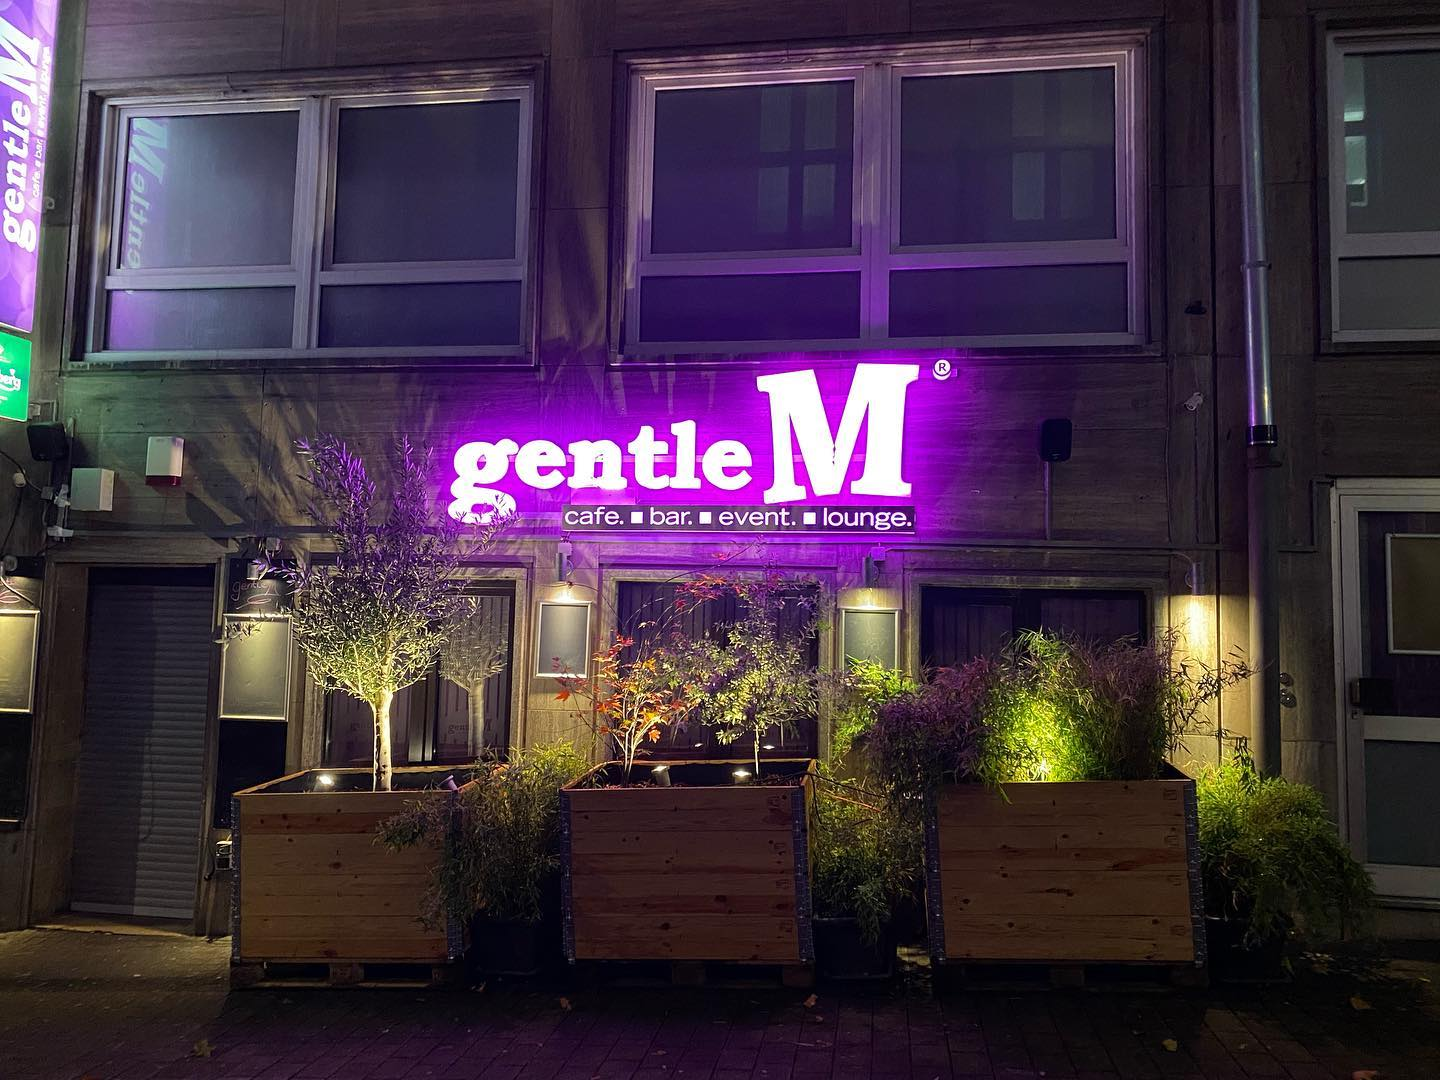 die gentleM Gay Bar in Essen